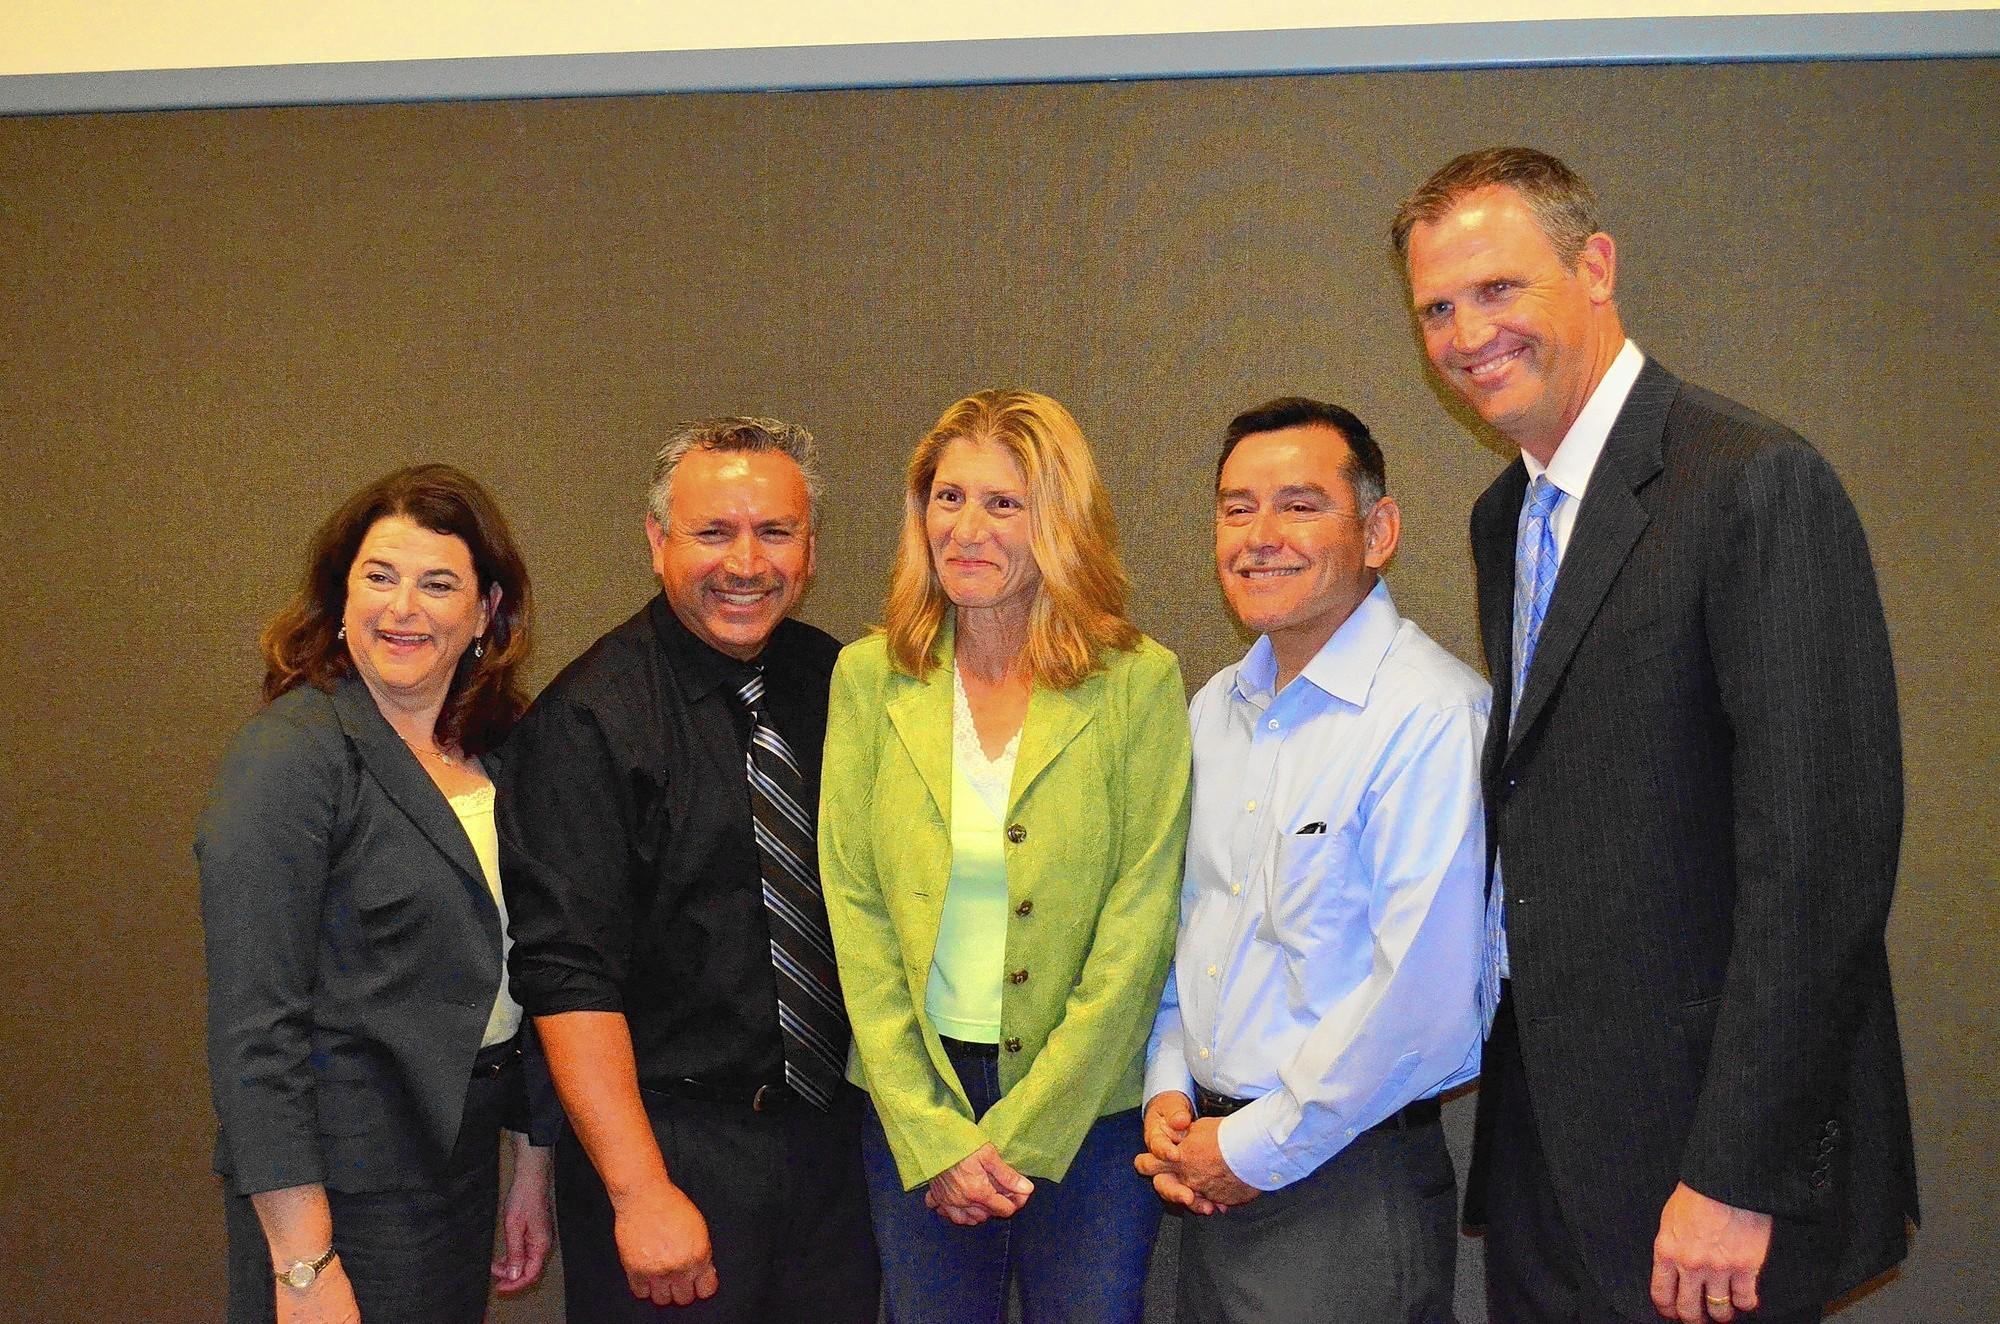 Orange County Board of Education Trustee Elizabeth Parker, left, and John Drake, the Director of Certificated Personnel, right, celebrate Newport-Mesa employees Jose Bedolla, Roberta Geller, Alejo Ortiz being named Classified Employees of the Year during a board meeting Wednesday.